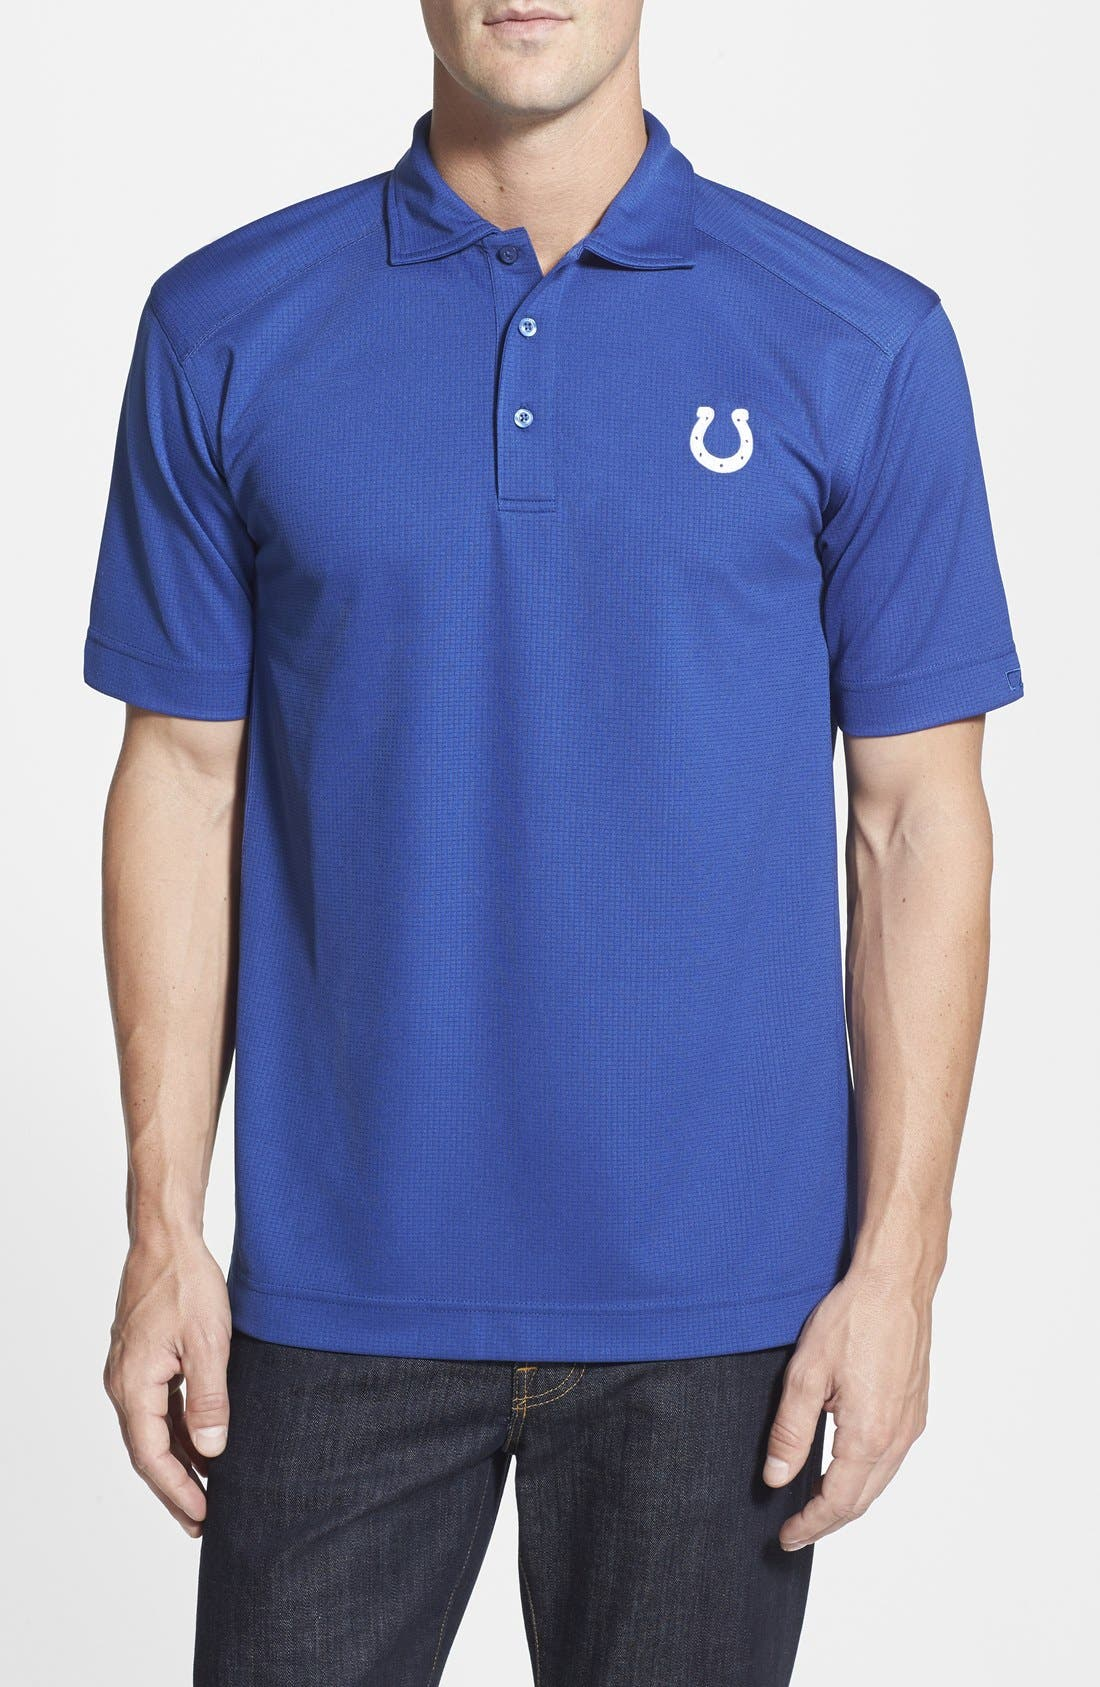 Indianapolis Colts - Genre DryTec Moisture Wicking Polo,                             Main thumbnail 2, color,